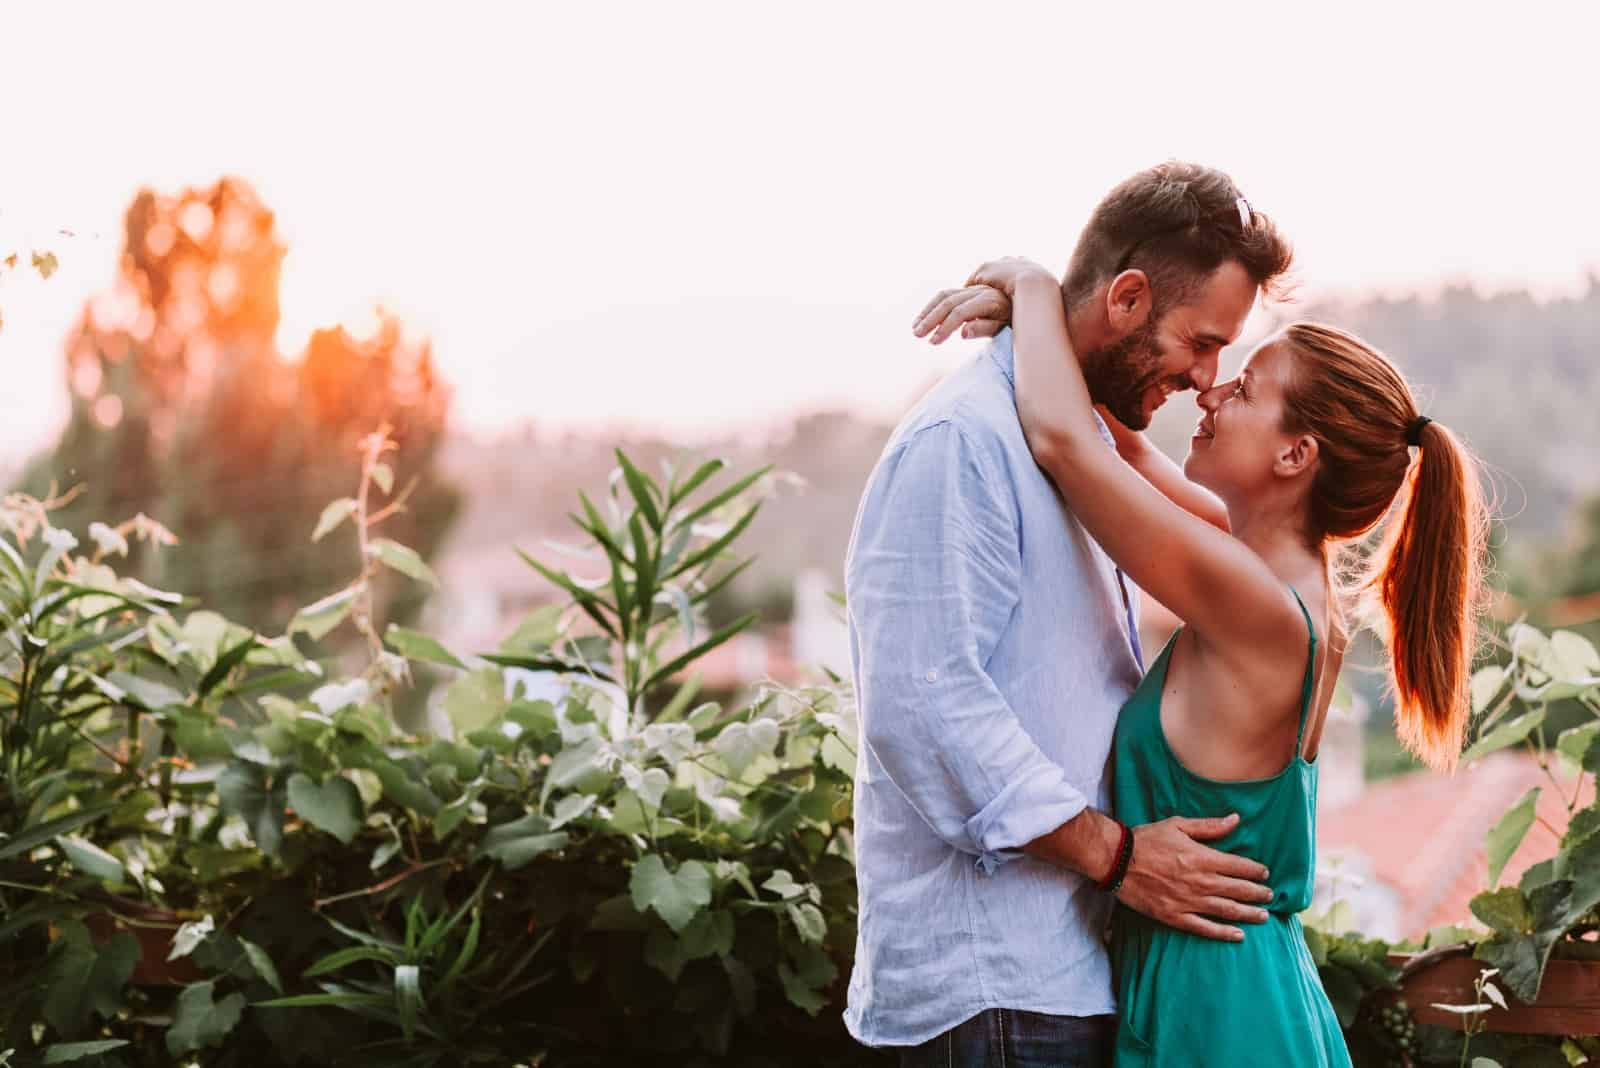 How To Keep A Guy Interested In You FOREVER